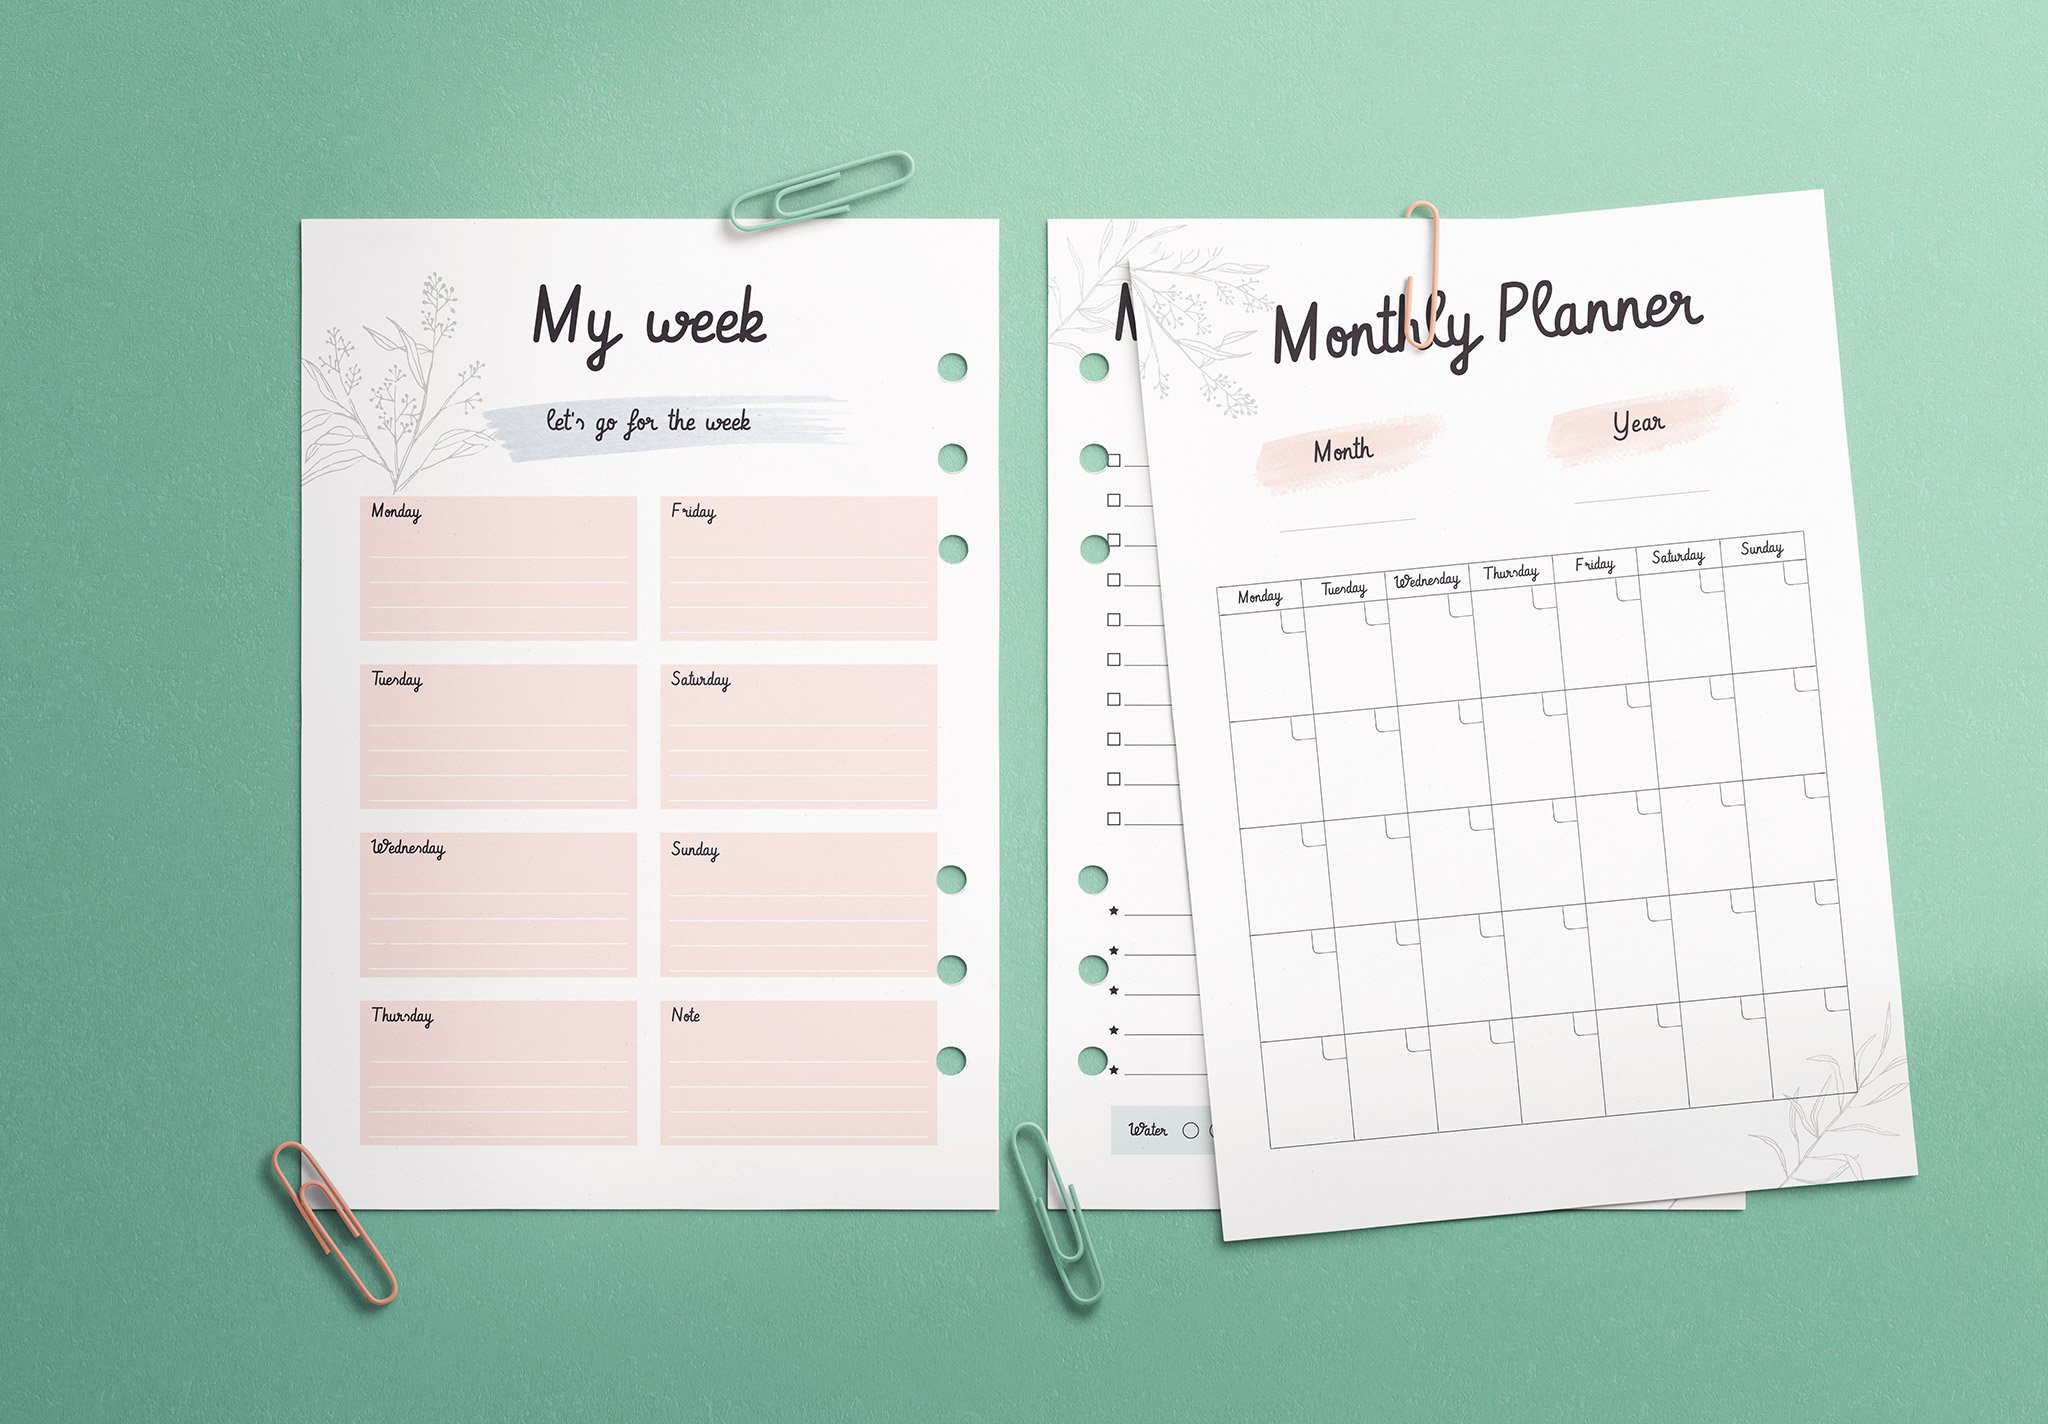 Planner Inserts A5 Size Mockup Image02